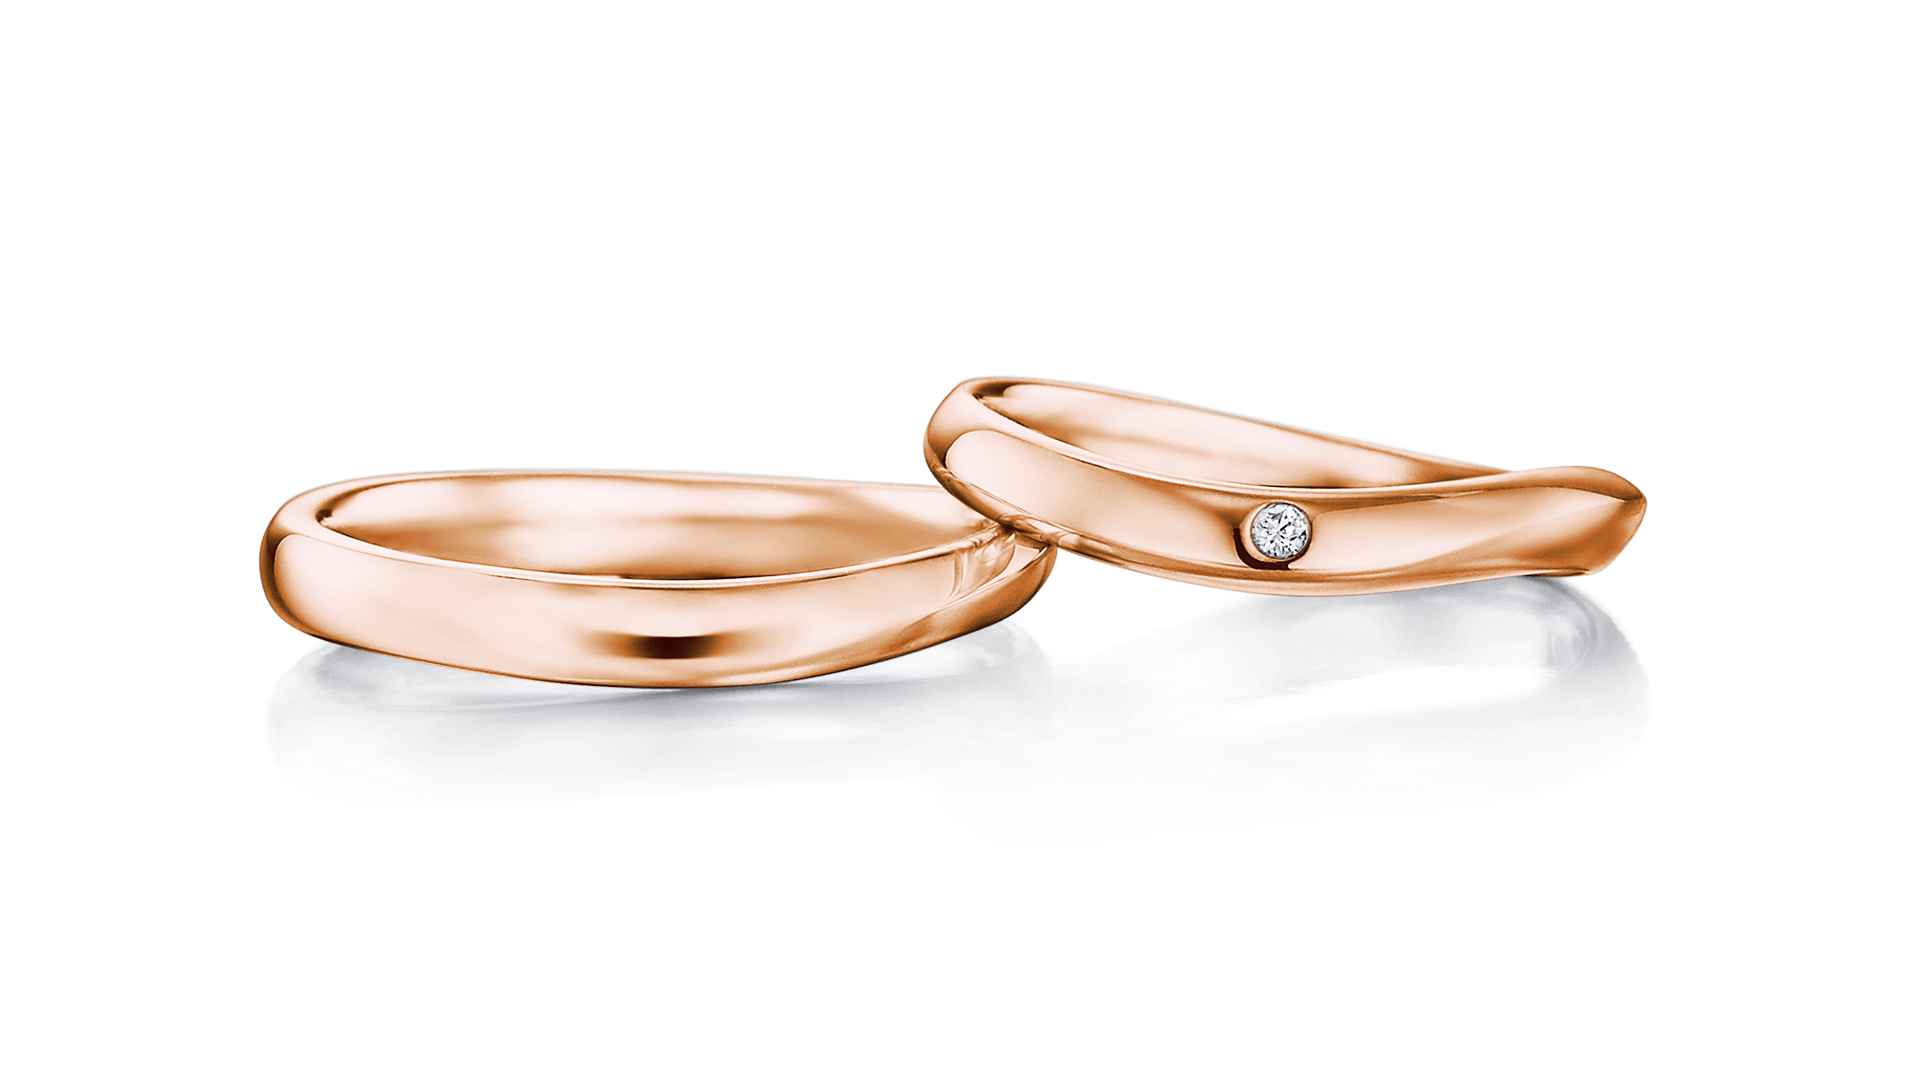 hermes ヘルメス | 結婚指輪サムネイル 1